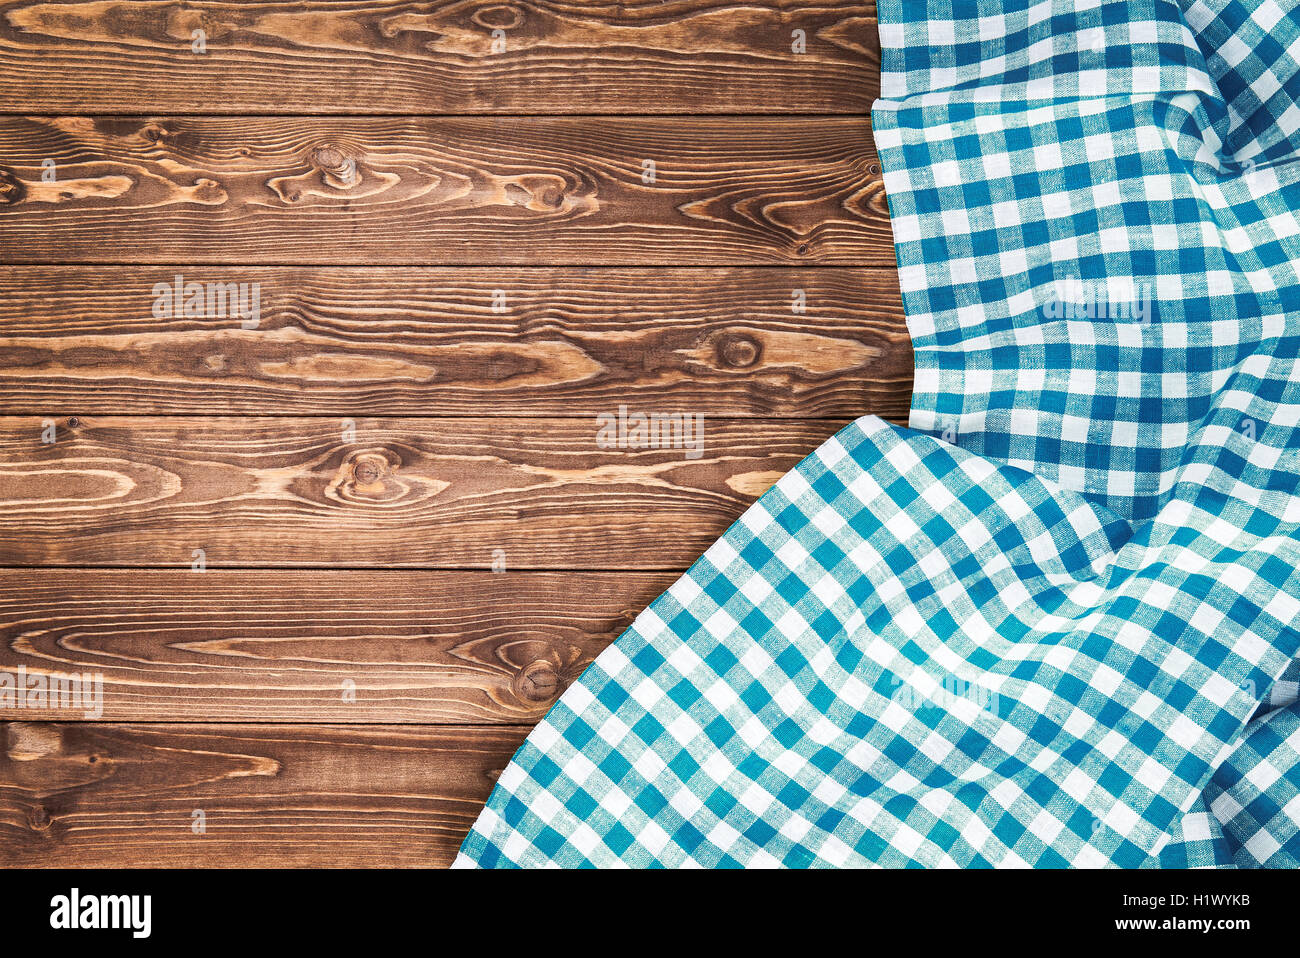 Blue Checkered Tablecloth On Wooden Table